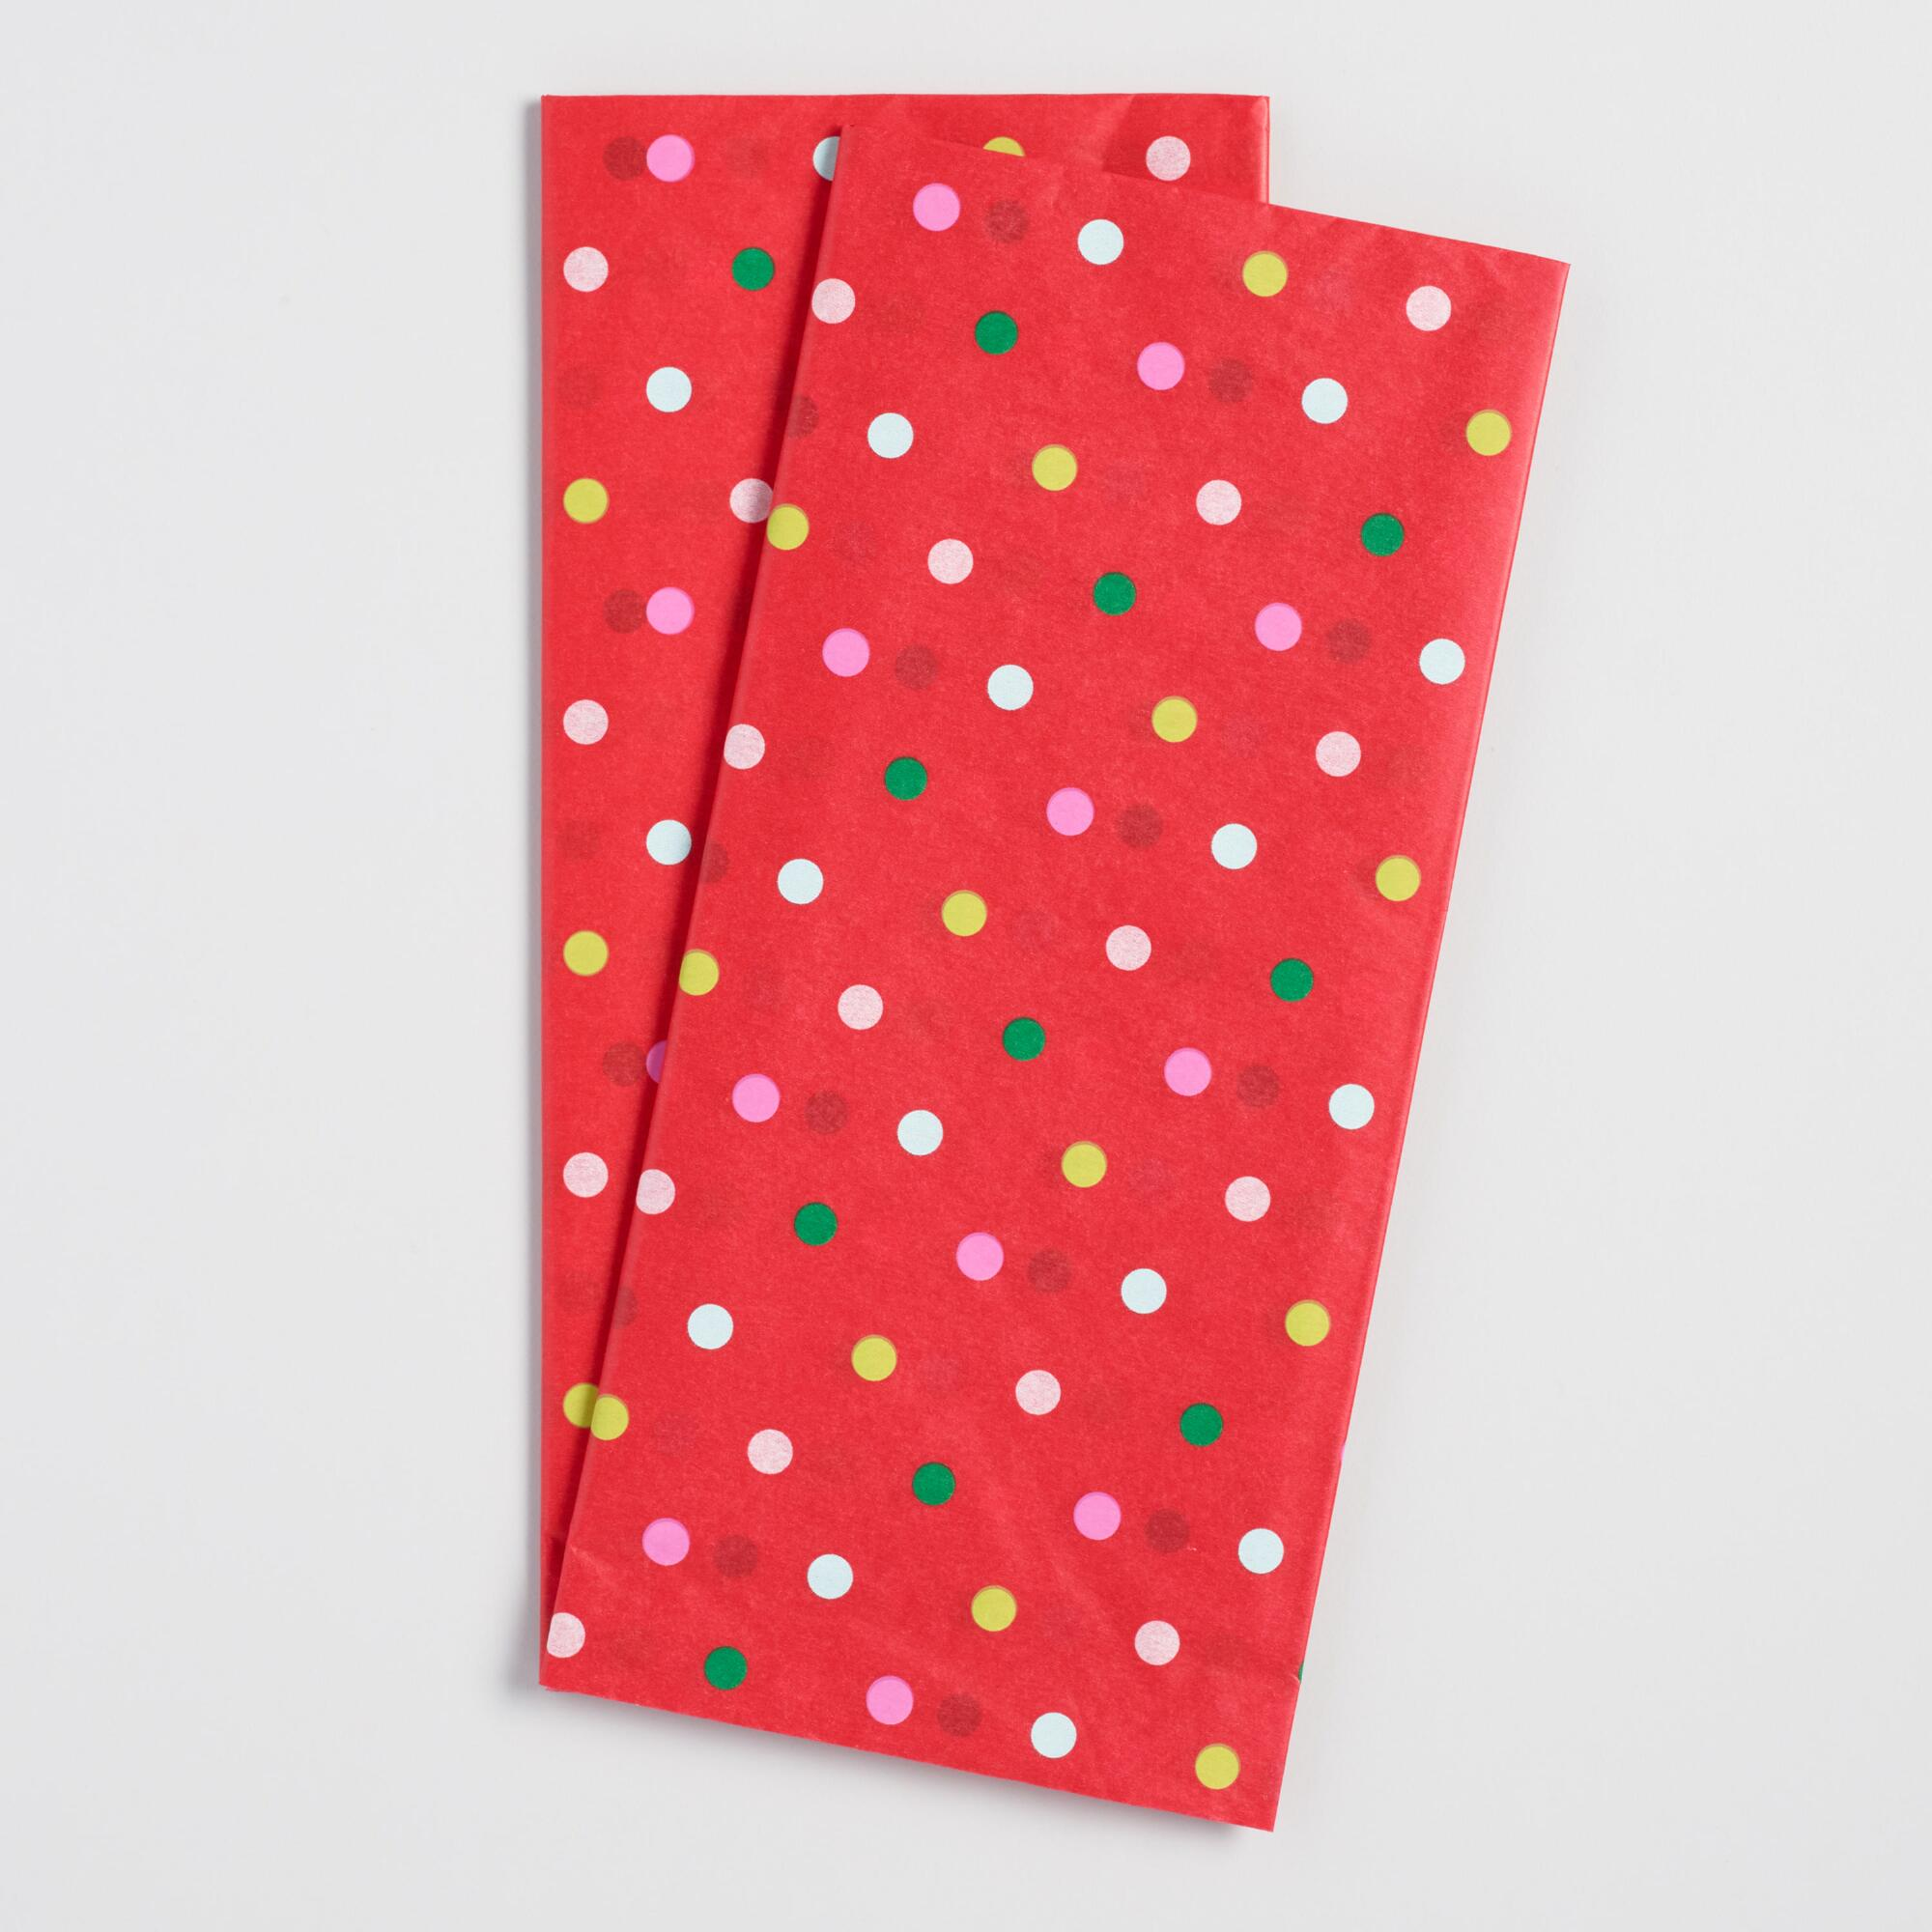 Red and White Polka Dot Tissue Paper Set Of 2 by World Market